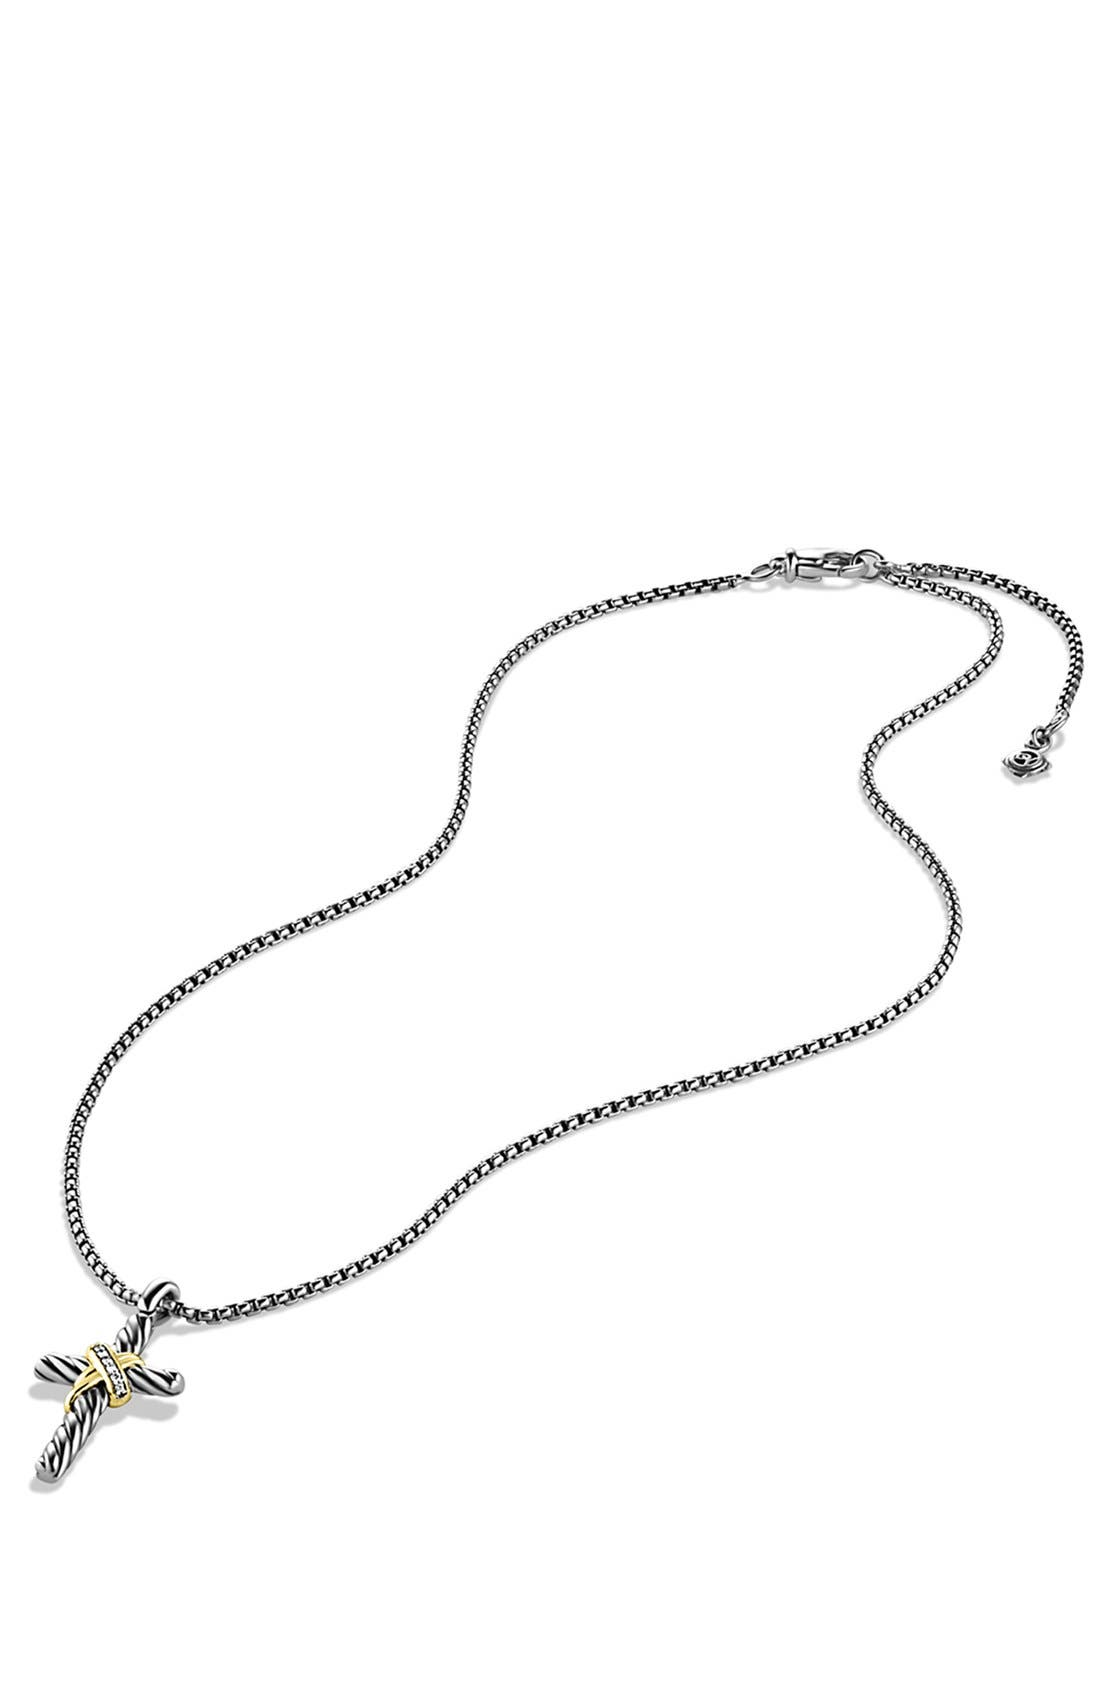 'X' Cross with Diamonds and Gold on Chain,                             Alternate thumbnail 4, color,                             DIAMOND